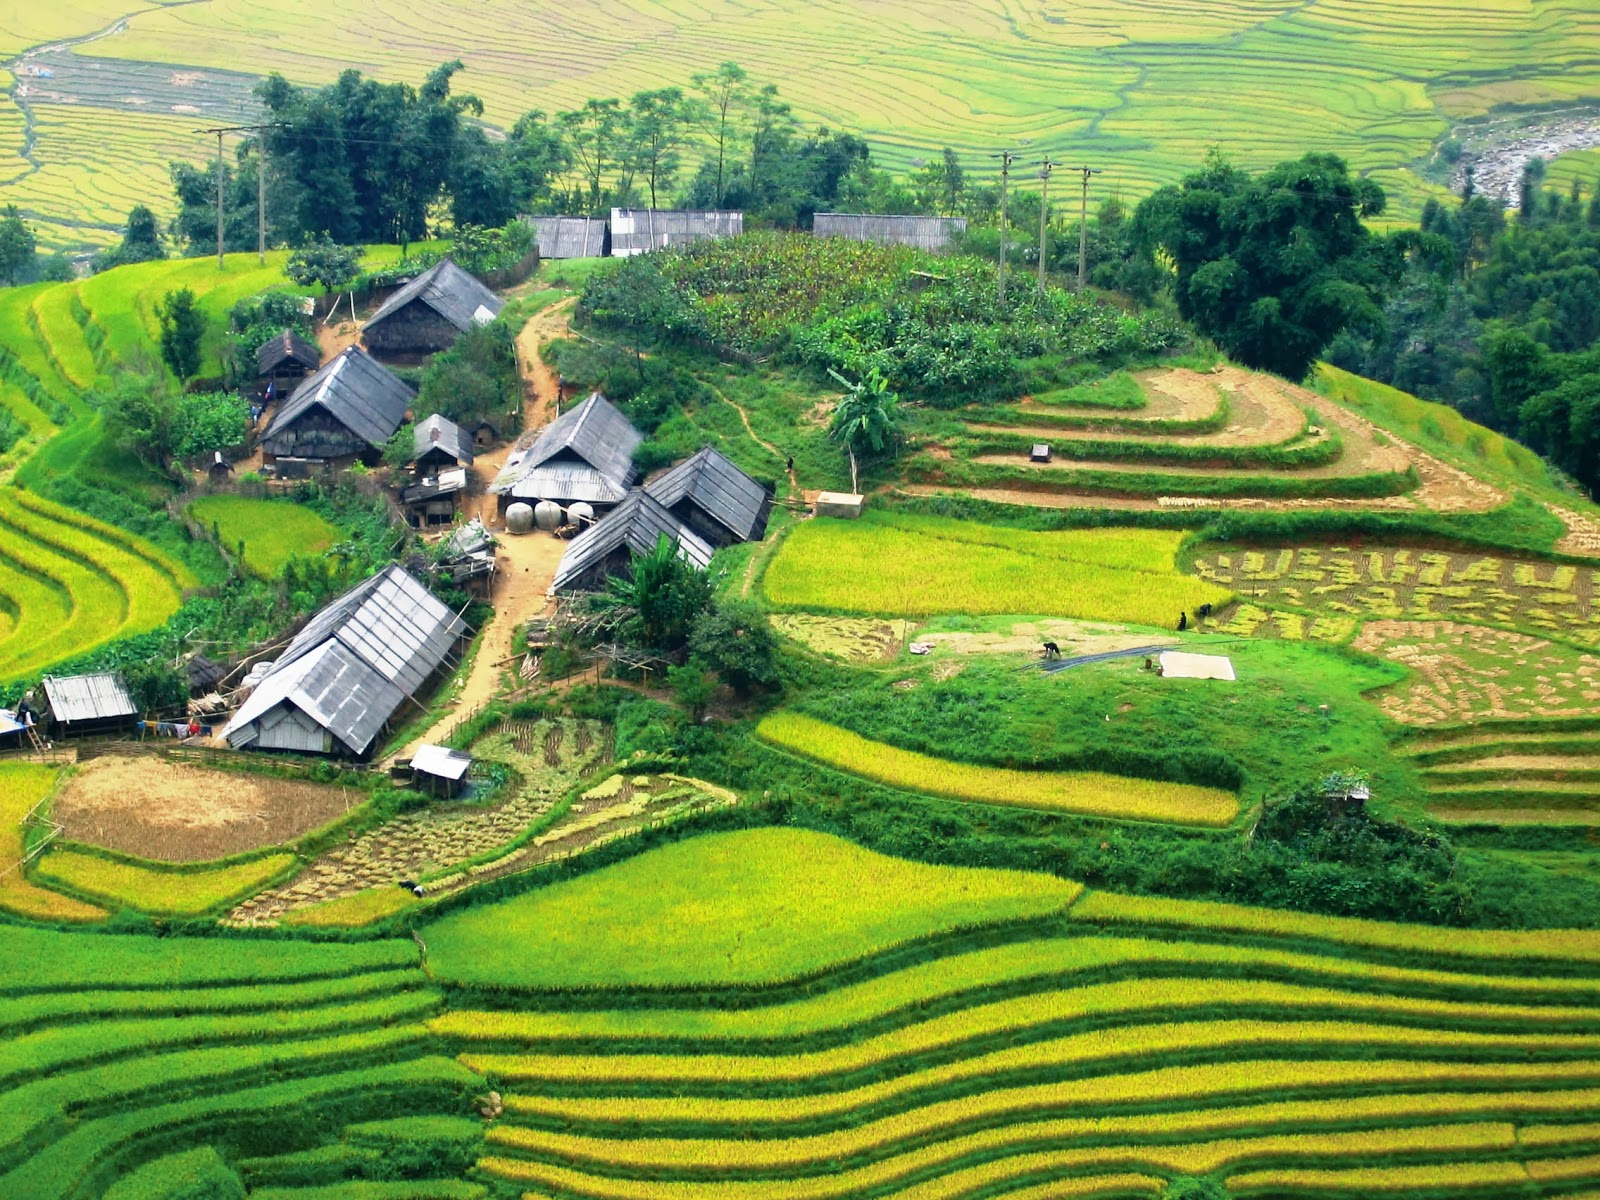 The beauty of Sapa seen from above in summer